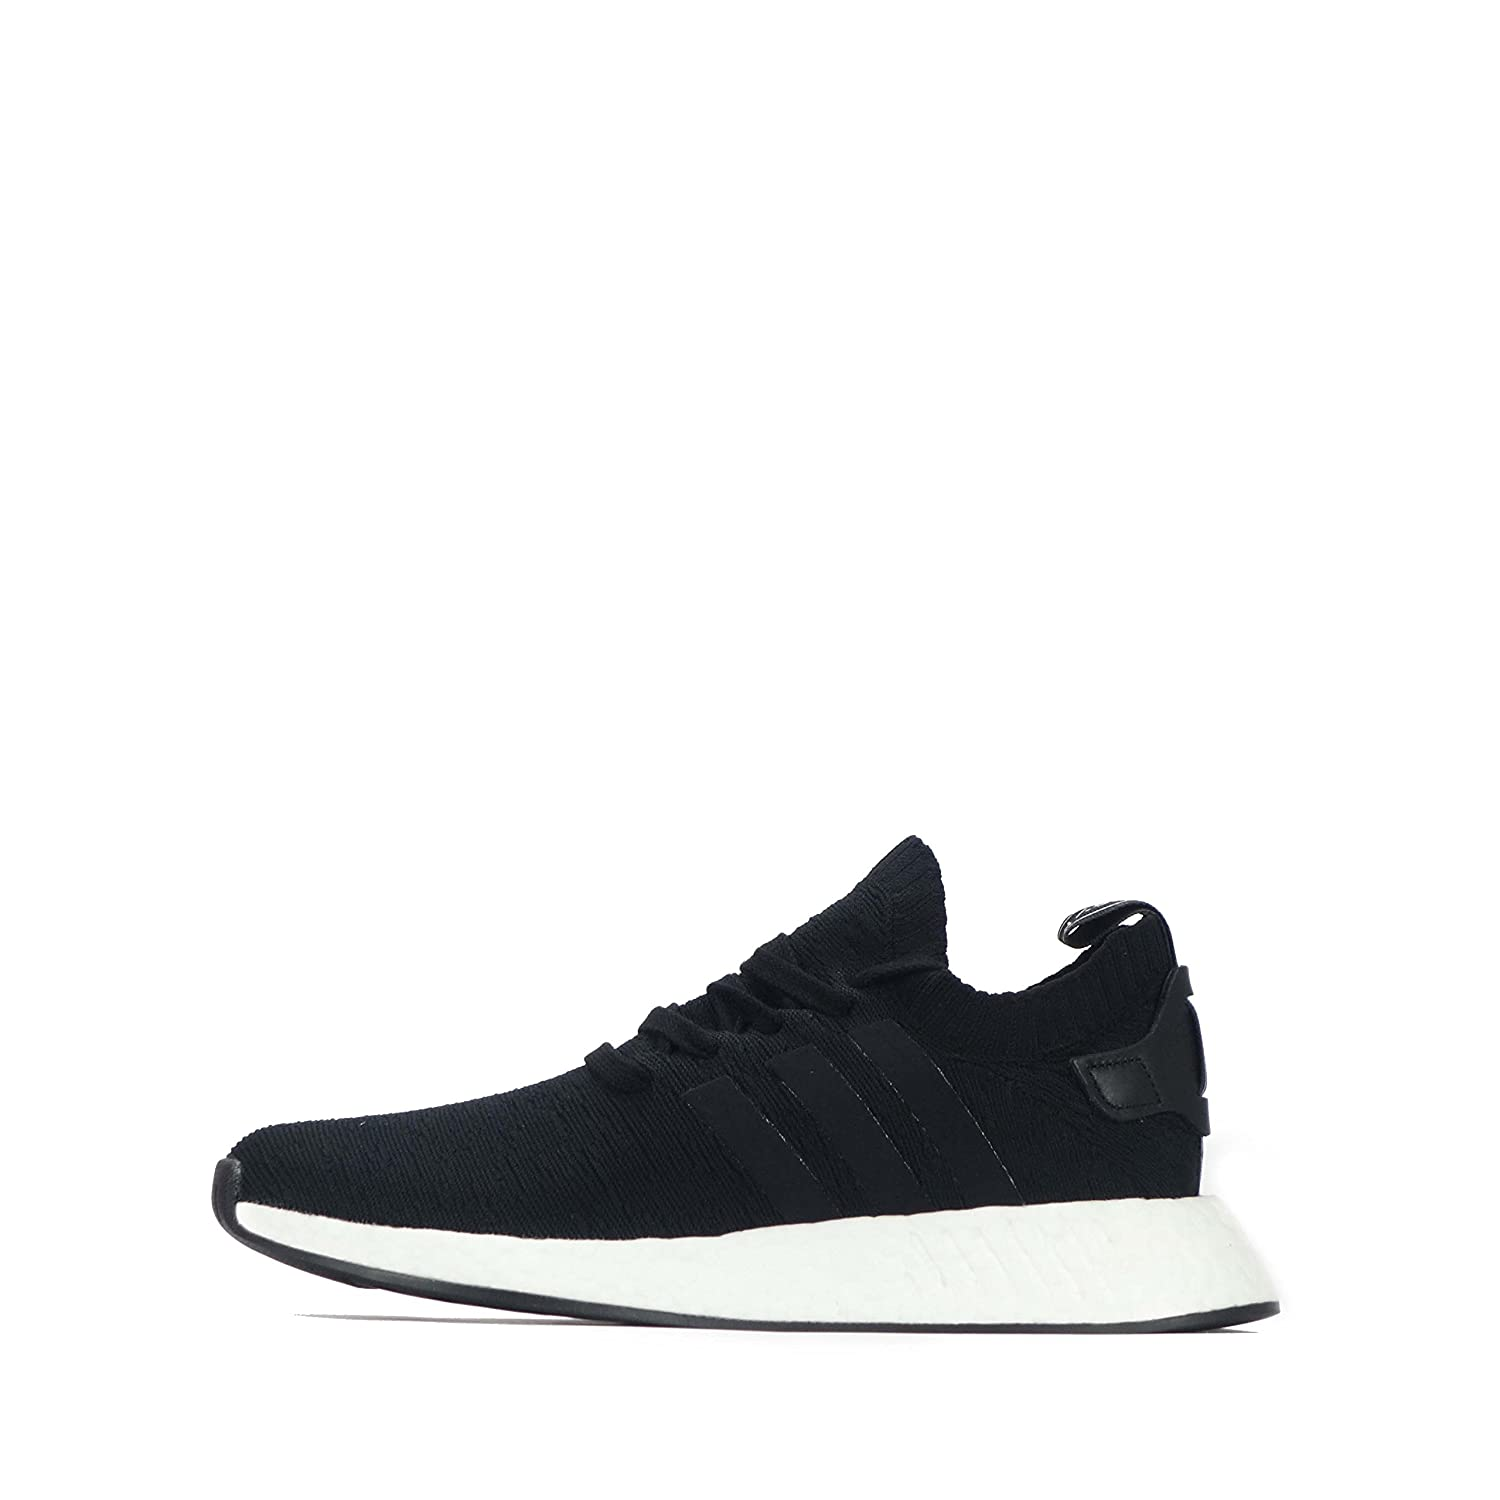 newest collection 6d82b 26282 adidas Originals NMD_R2 Primeknit Men's Shoes: Amazon.co.uk ...